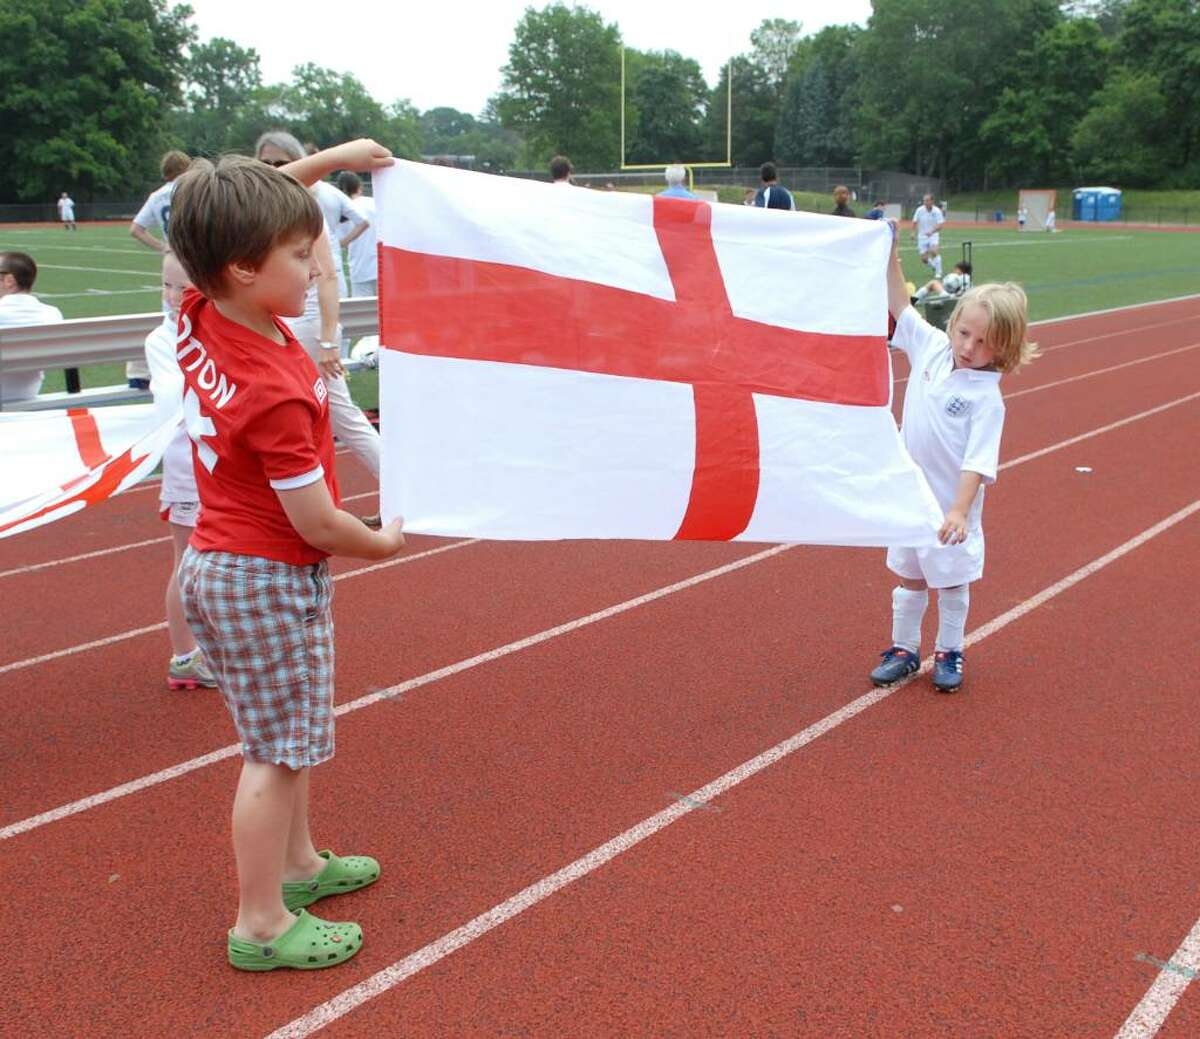 Anglophiles Alfred Otton, 8, left, and friend Freddie Brogden, 5, both of Greenwich, raise the flag of England during a friendly pick-up soccer match at Greenwich High School between teams of Yanks and Brits, Saturday, June 12, 2010.